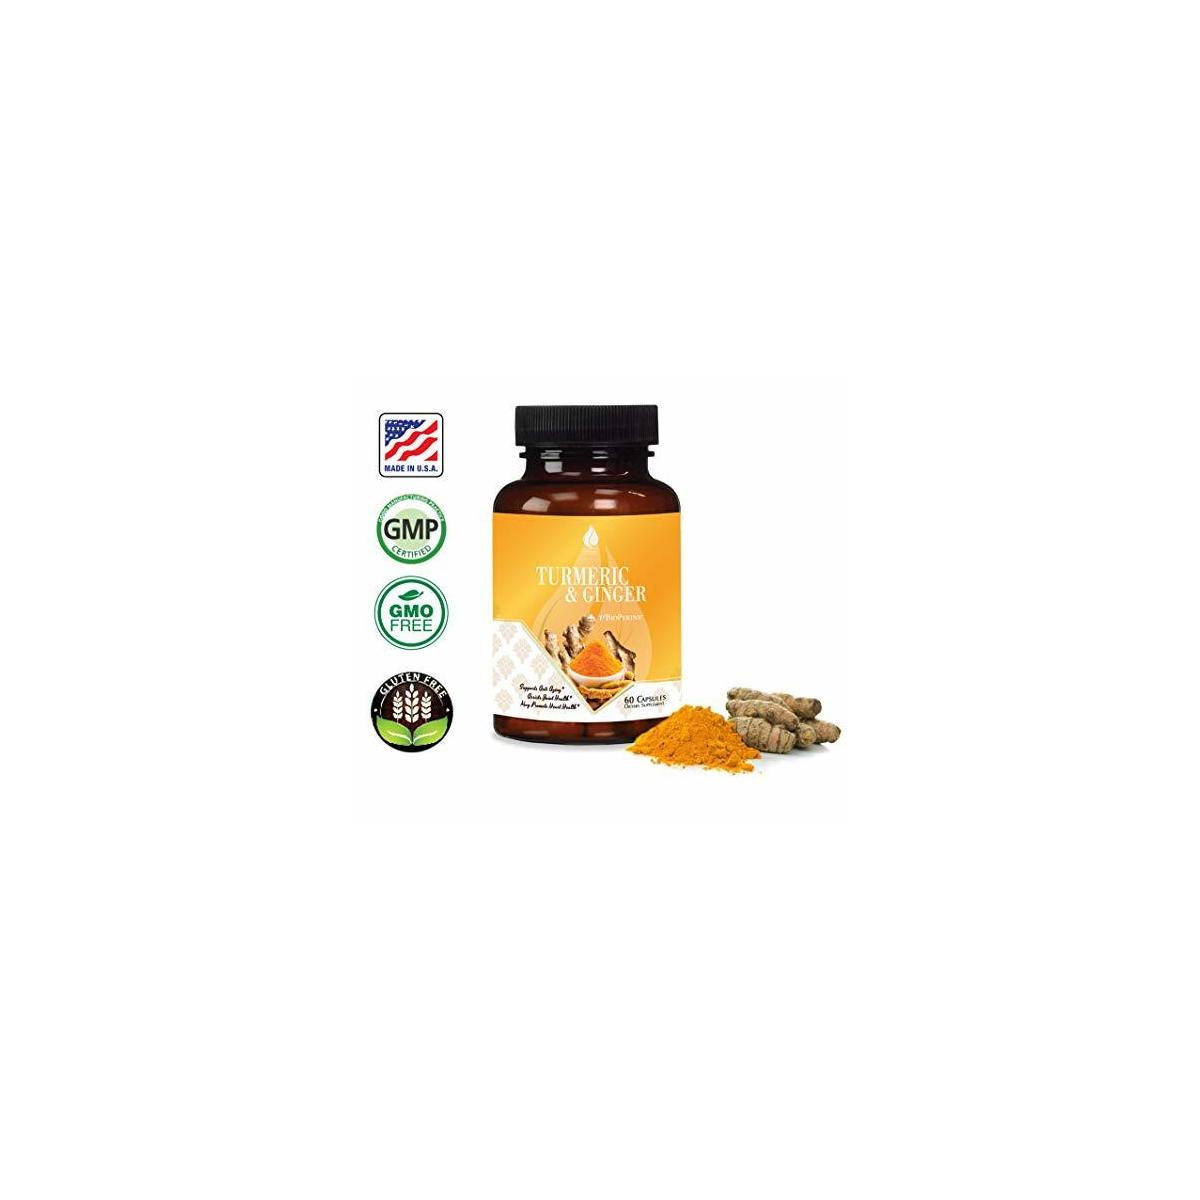 Turmeric Ginger with BioPerine 95% Curcuminoids Turmeric and Ginger Curcumin Supplement with Black Pepper Extract for Absorption. Supports Anti-inflammatory Response for Arthritis